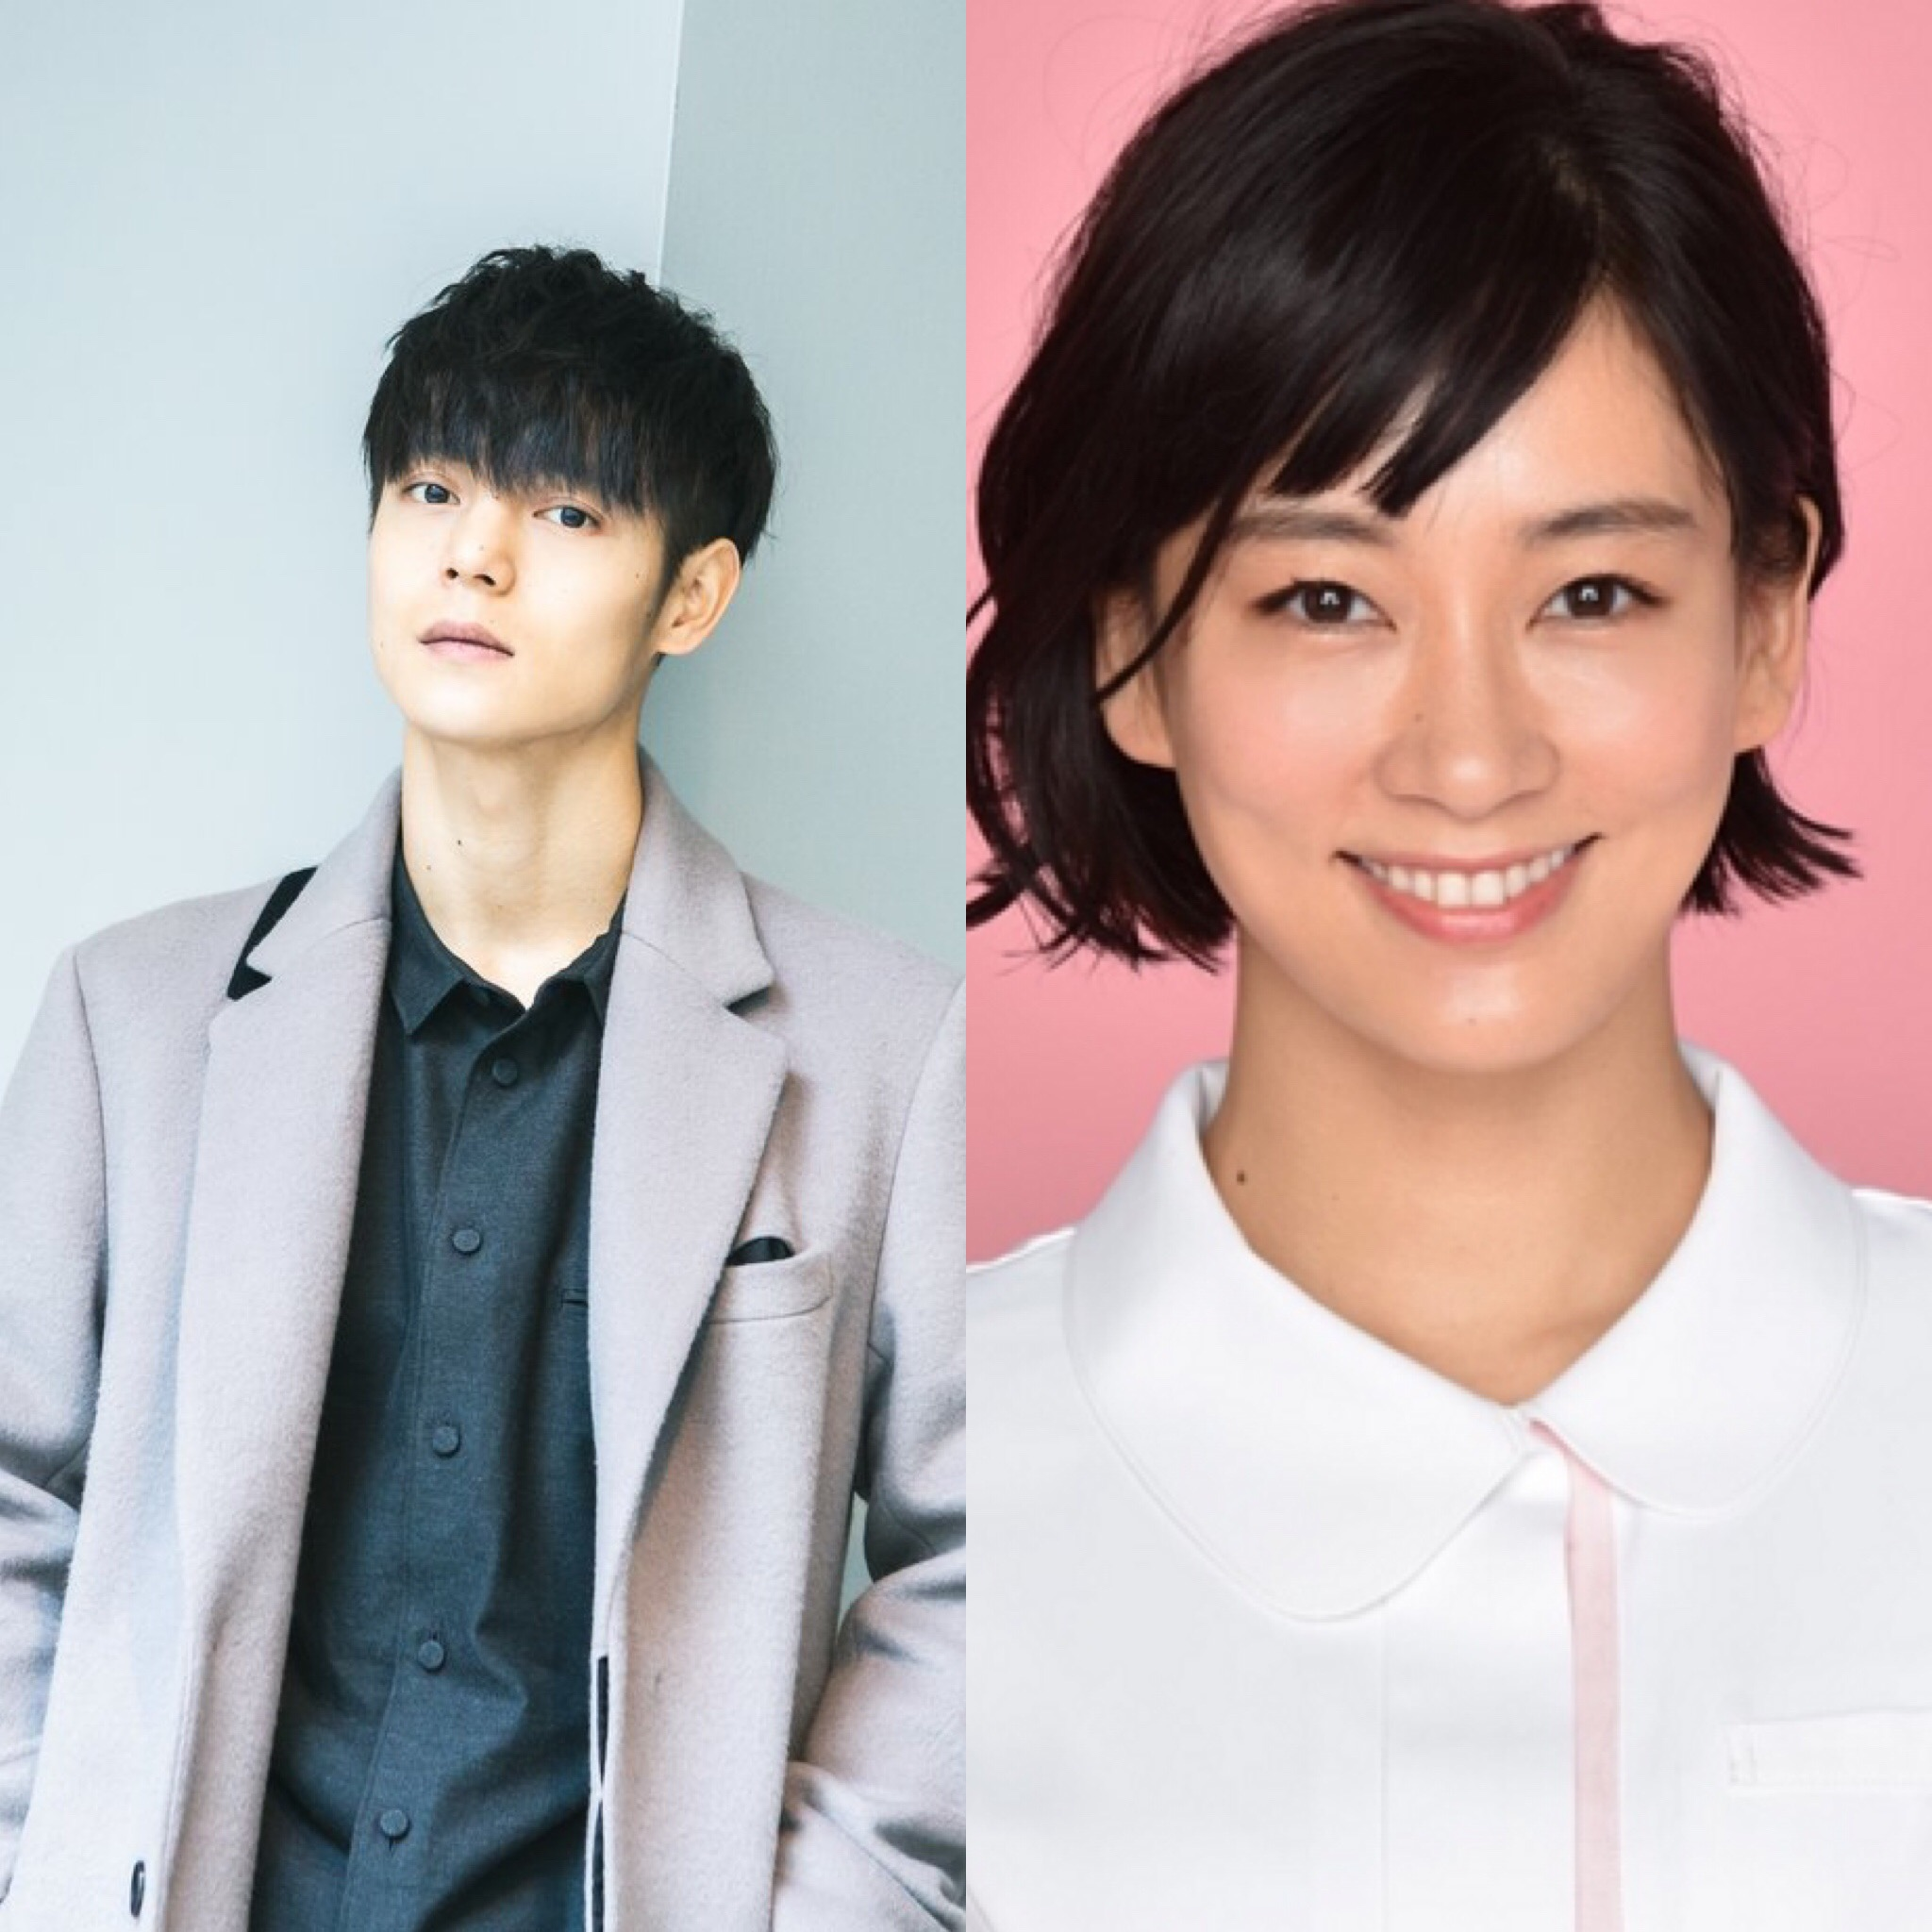 Masataka Kubota and Asami Mizukawa are married!